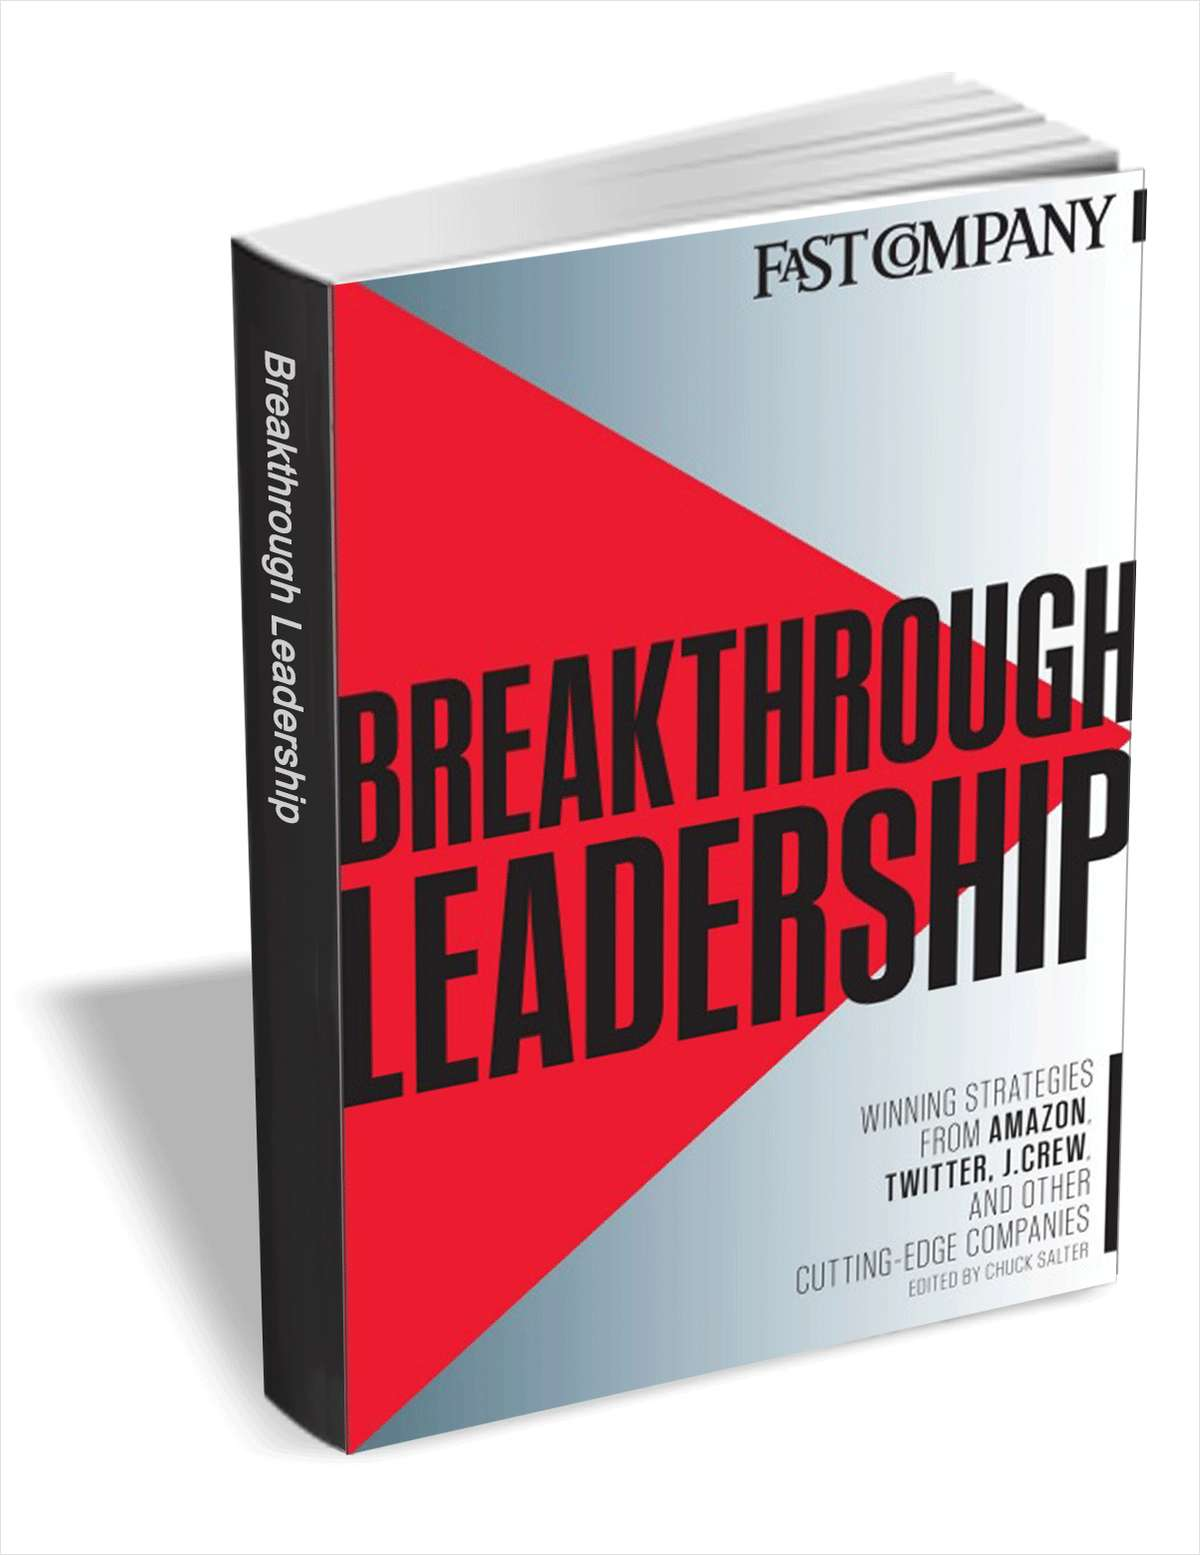 Breakthrough Leadership - Winning Strategies from Amazon, Twitter, J.Crew, and Other Cutting-edge Companies